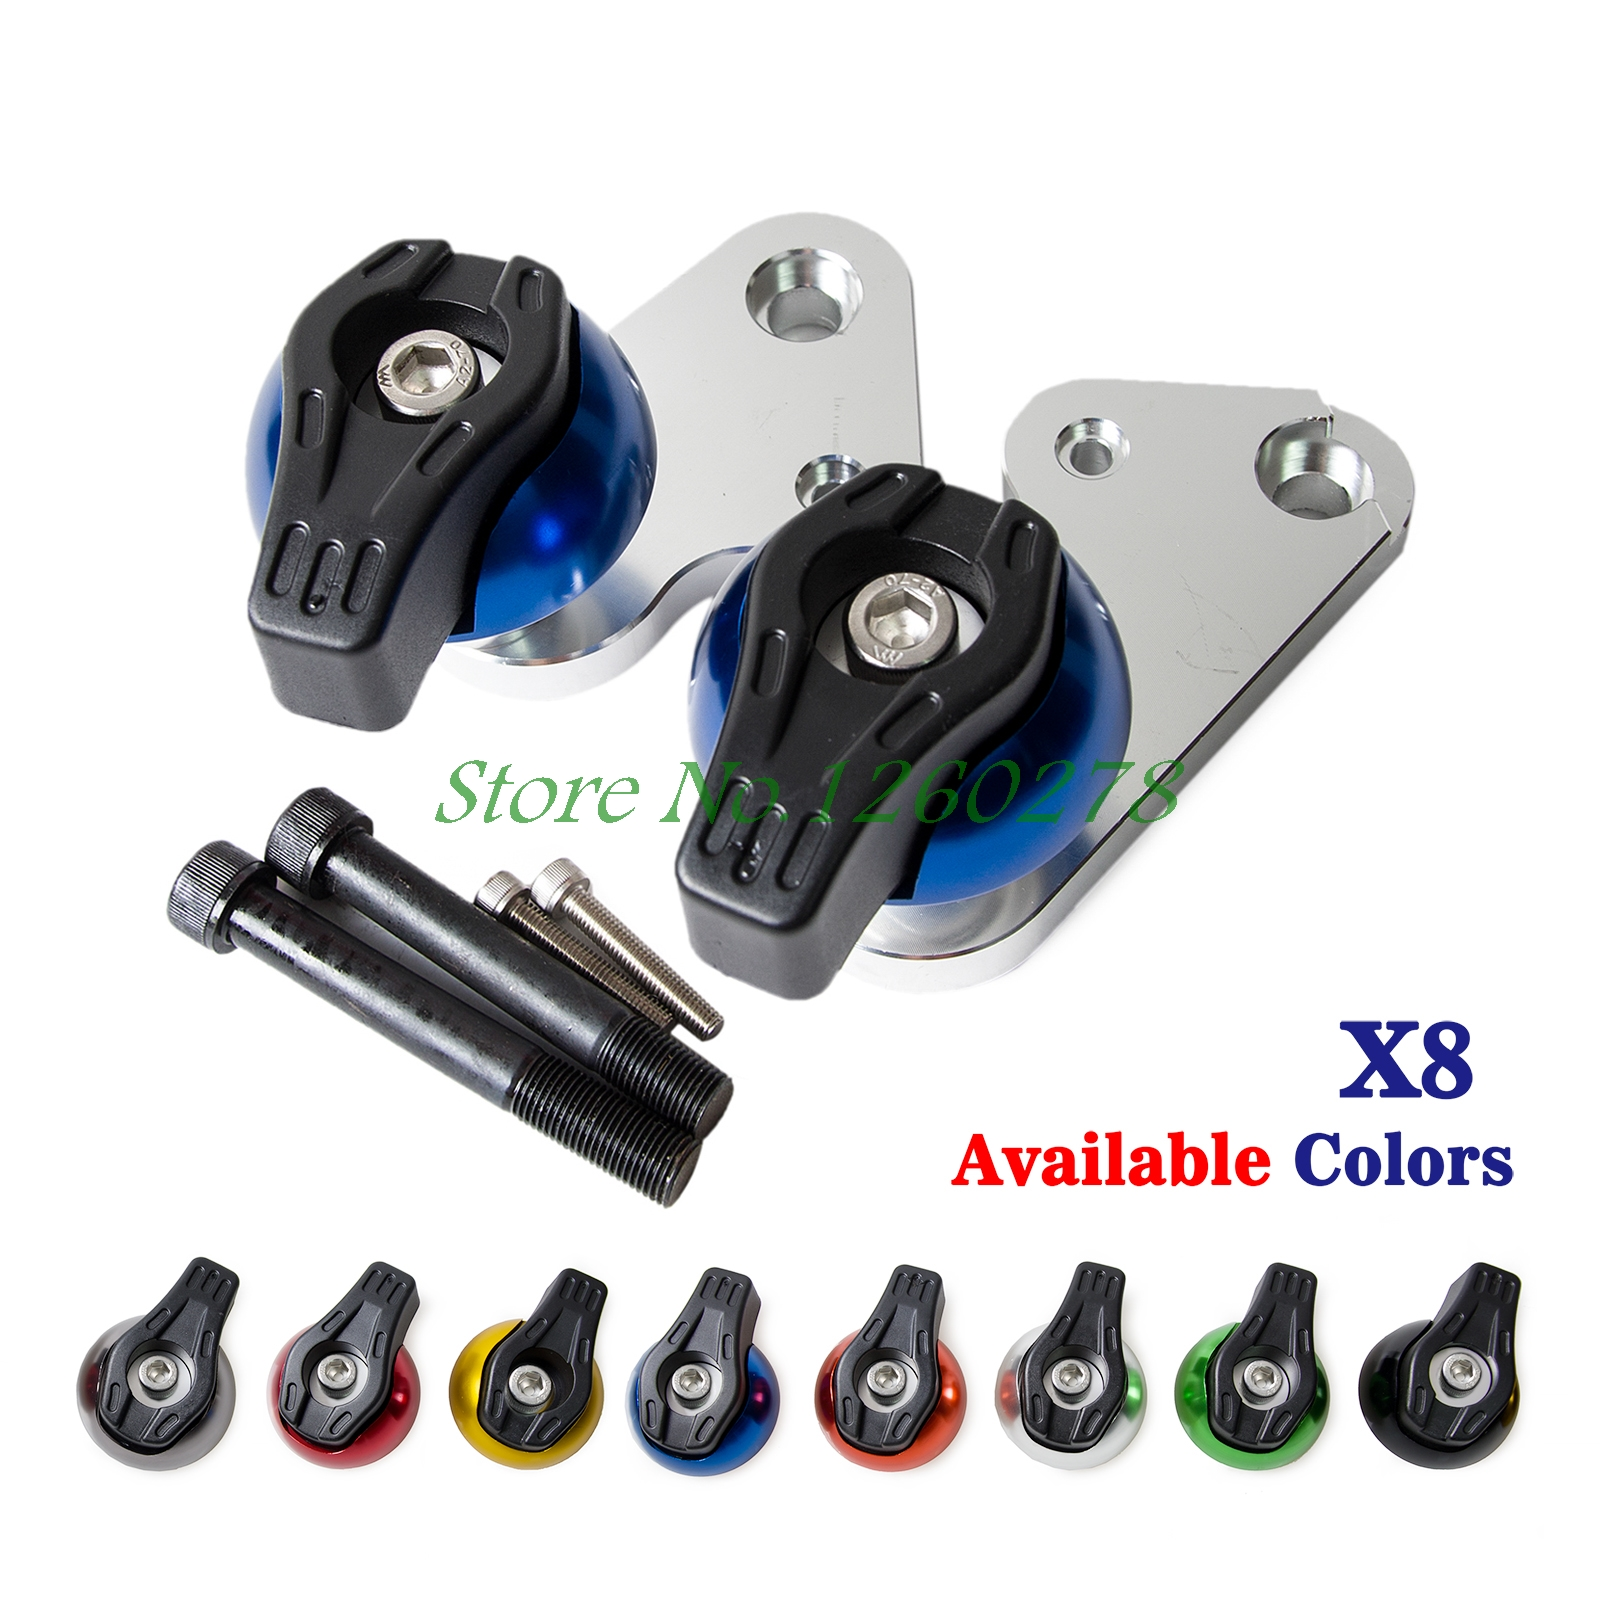 Motorcycle CNC Aluminium Frame Sliders Crash Pads Protector For Yamaha  YZF R1  2009 2010 2011 2012 motorcycle aluminium frame sliders crash pads protector for suzuki gsxr600 gsxr750 2006 2007 2009 2009 2010 2011 2012